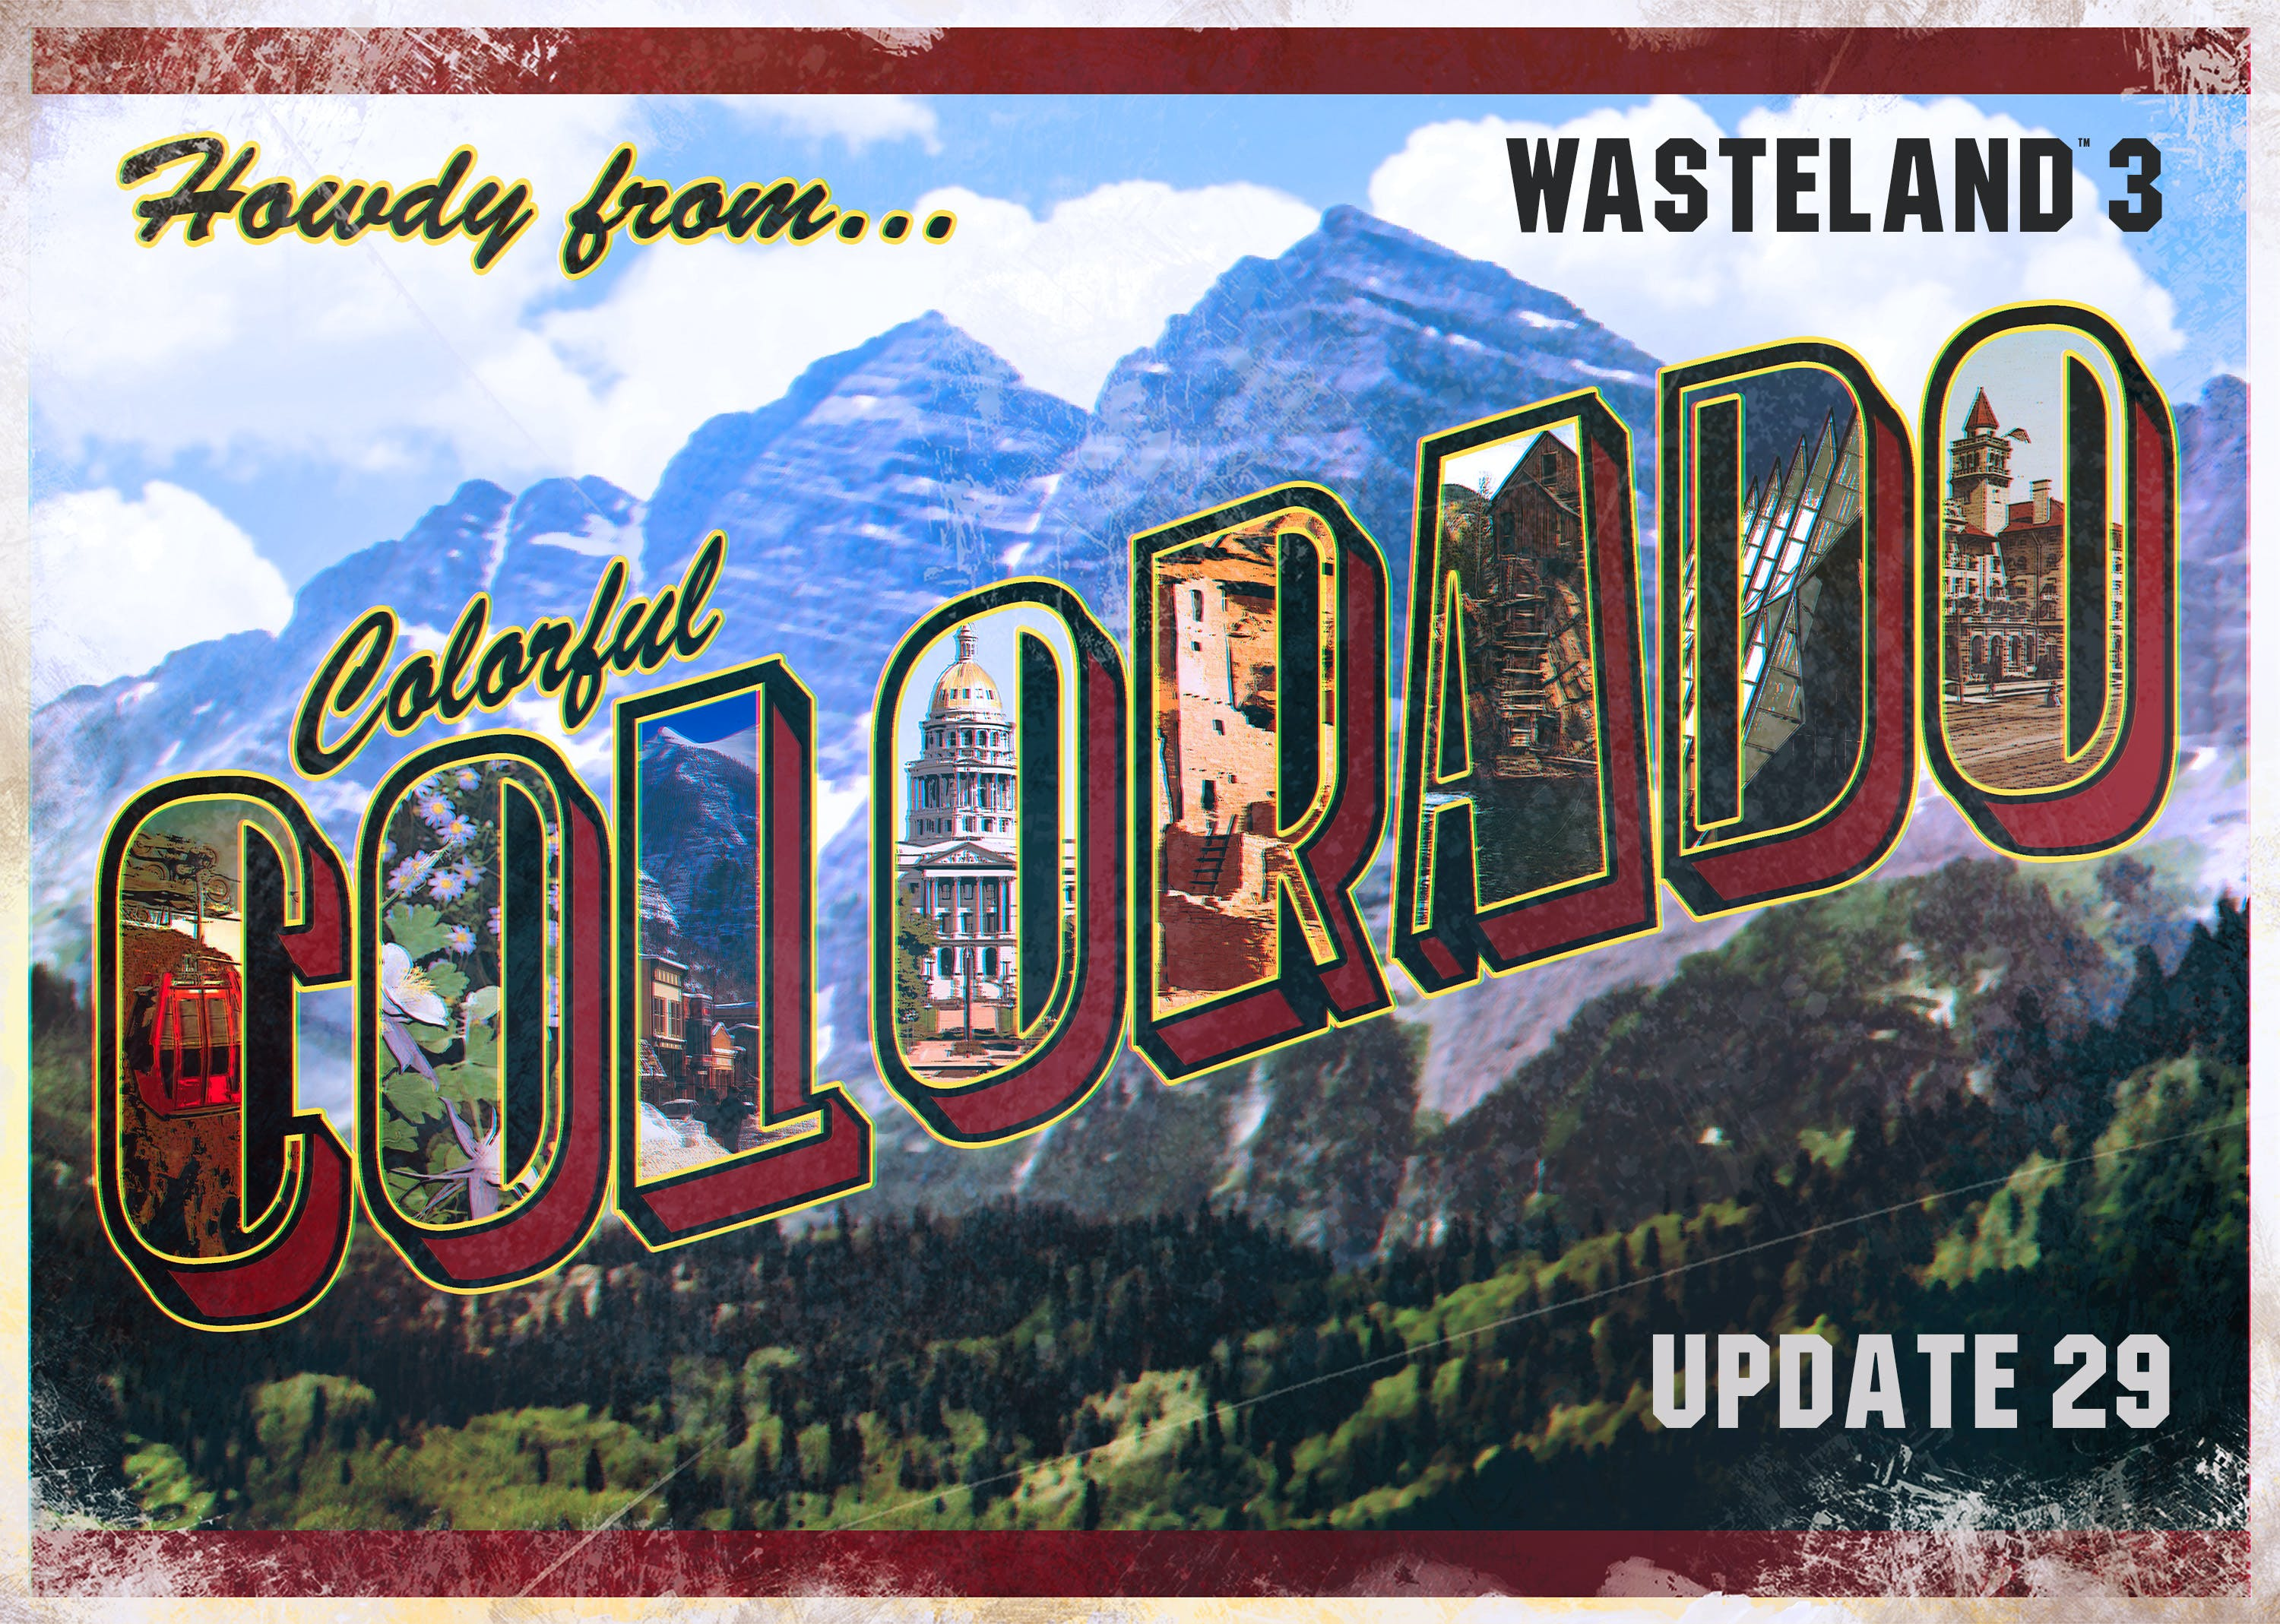 Wasteland 3: Howdy from Colorful Colorado! on Fig